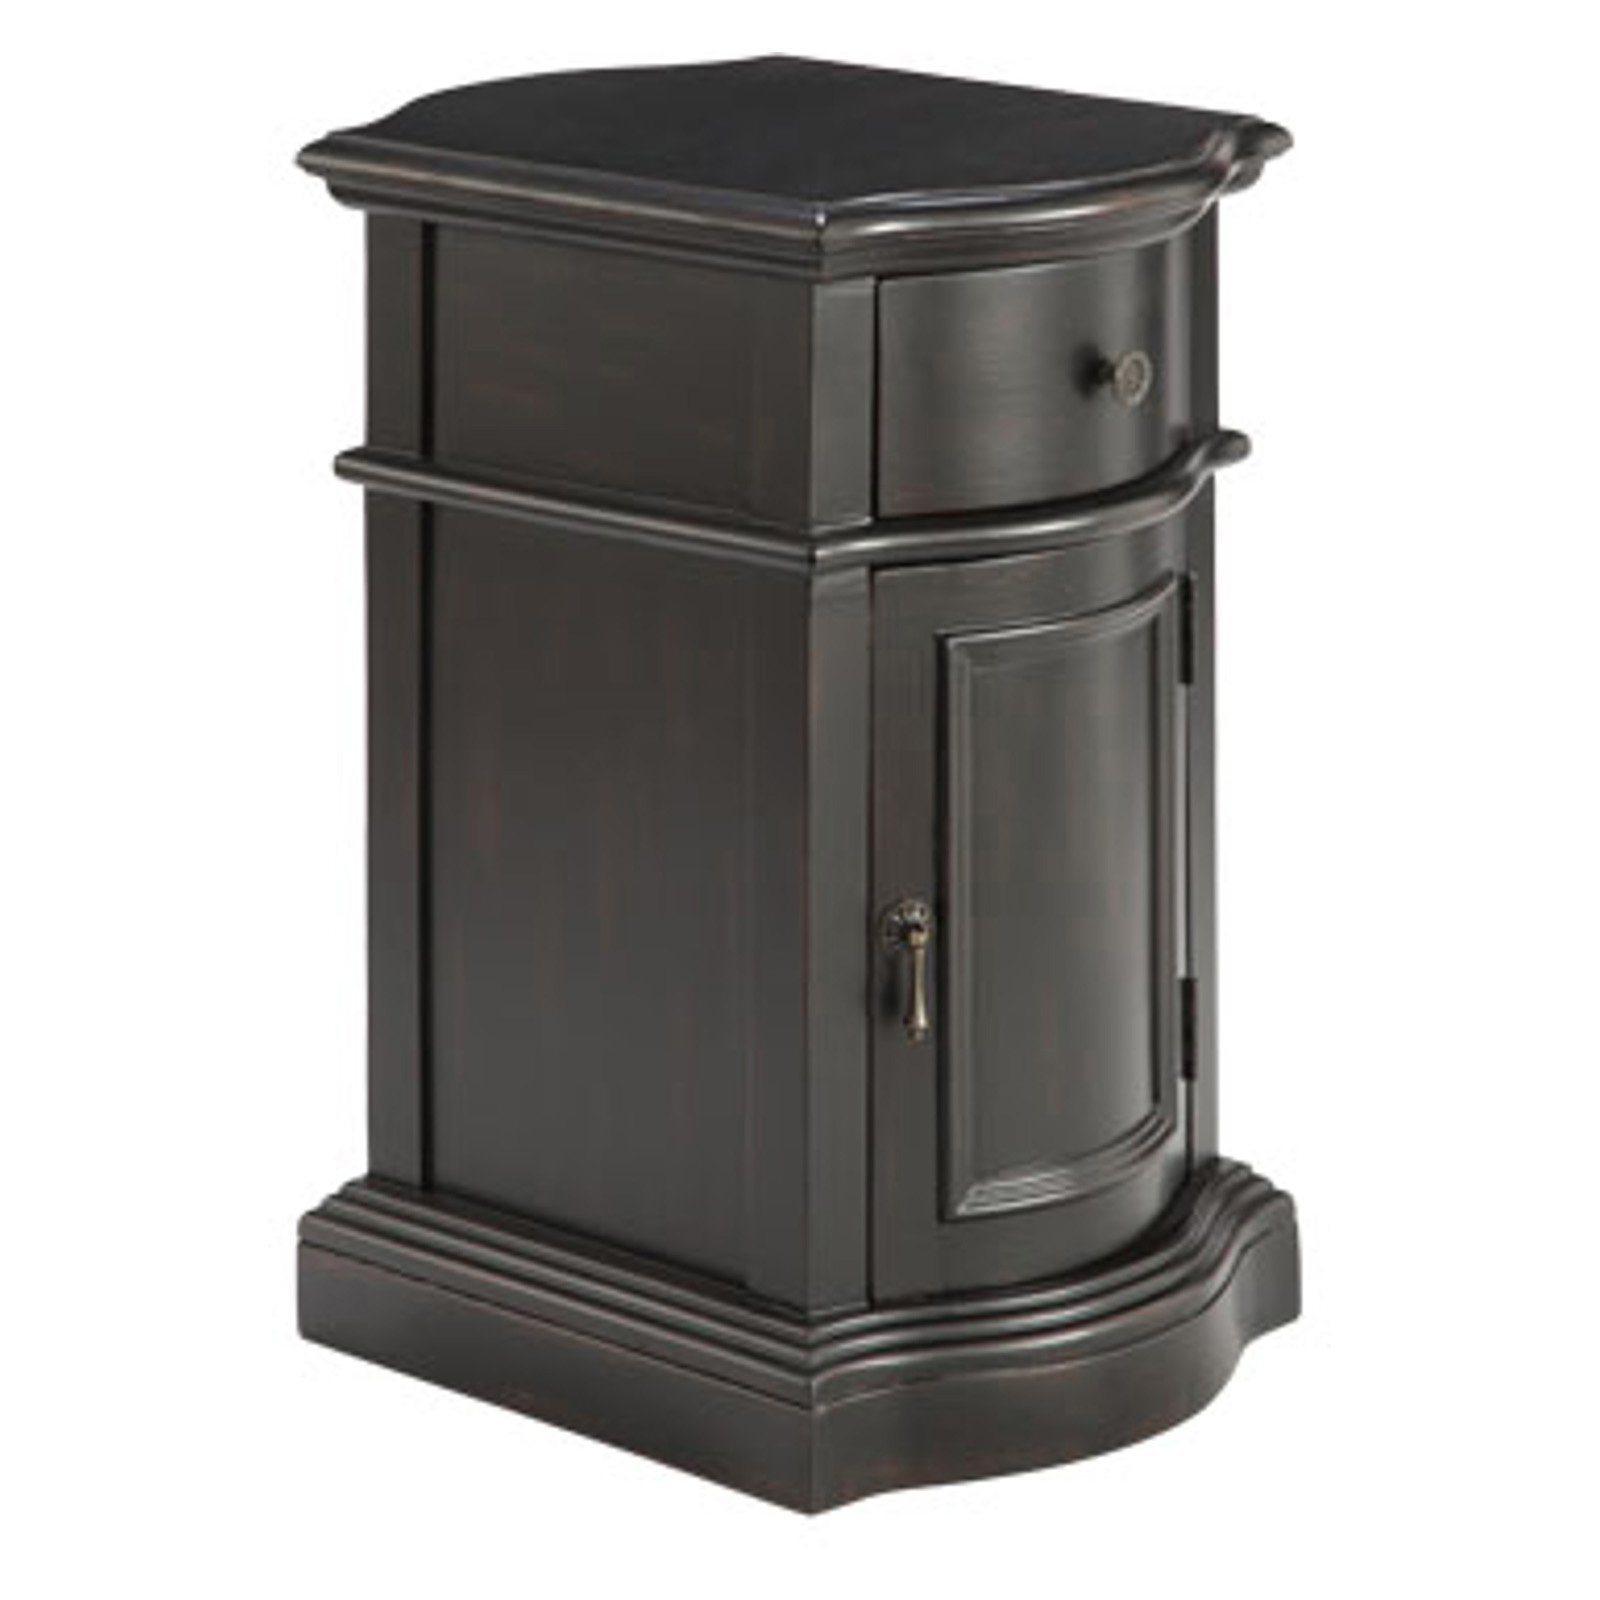 Stein World Petite Decorative Chest - Black